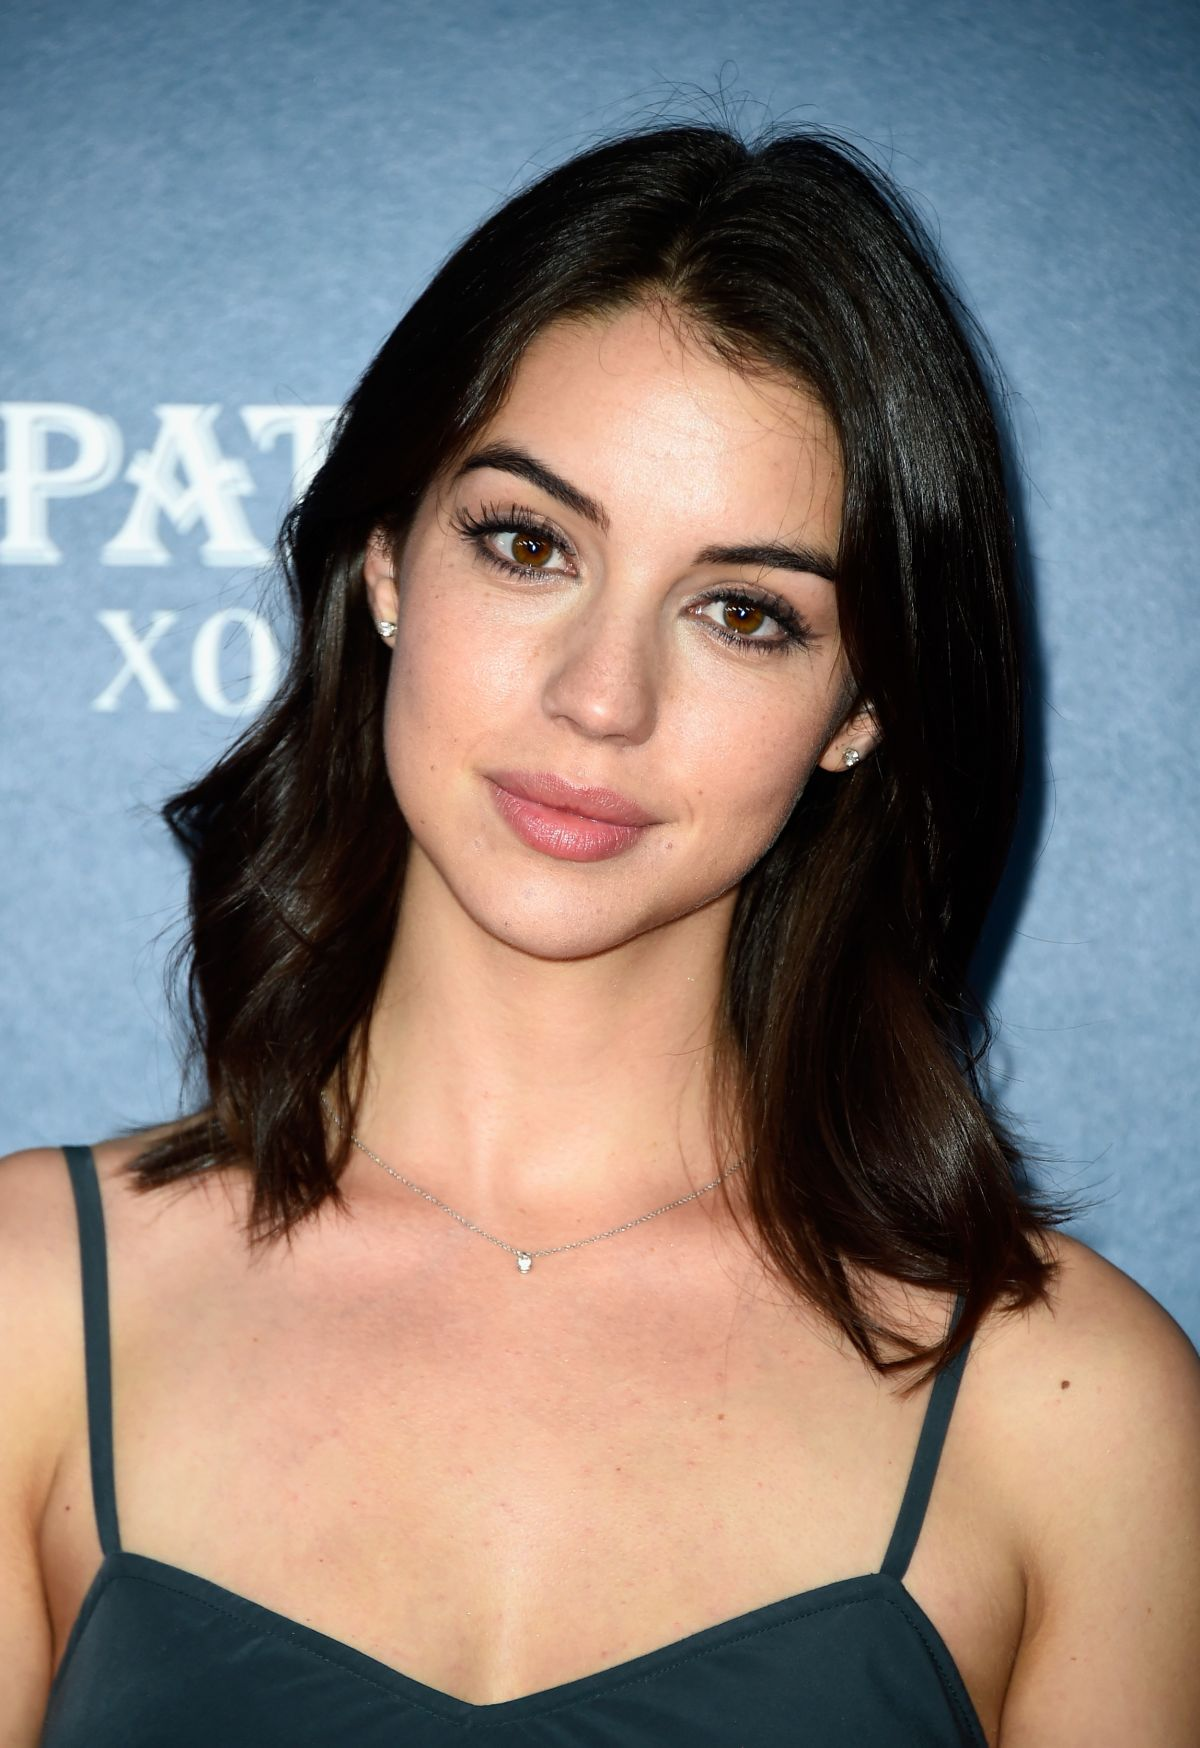 ADELAIDE KANE at Playboy Party at Comic-con in San Diego